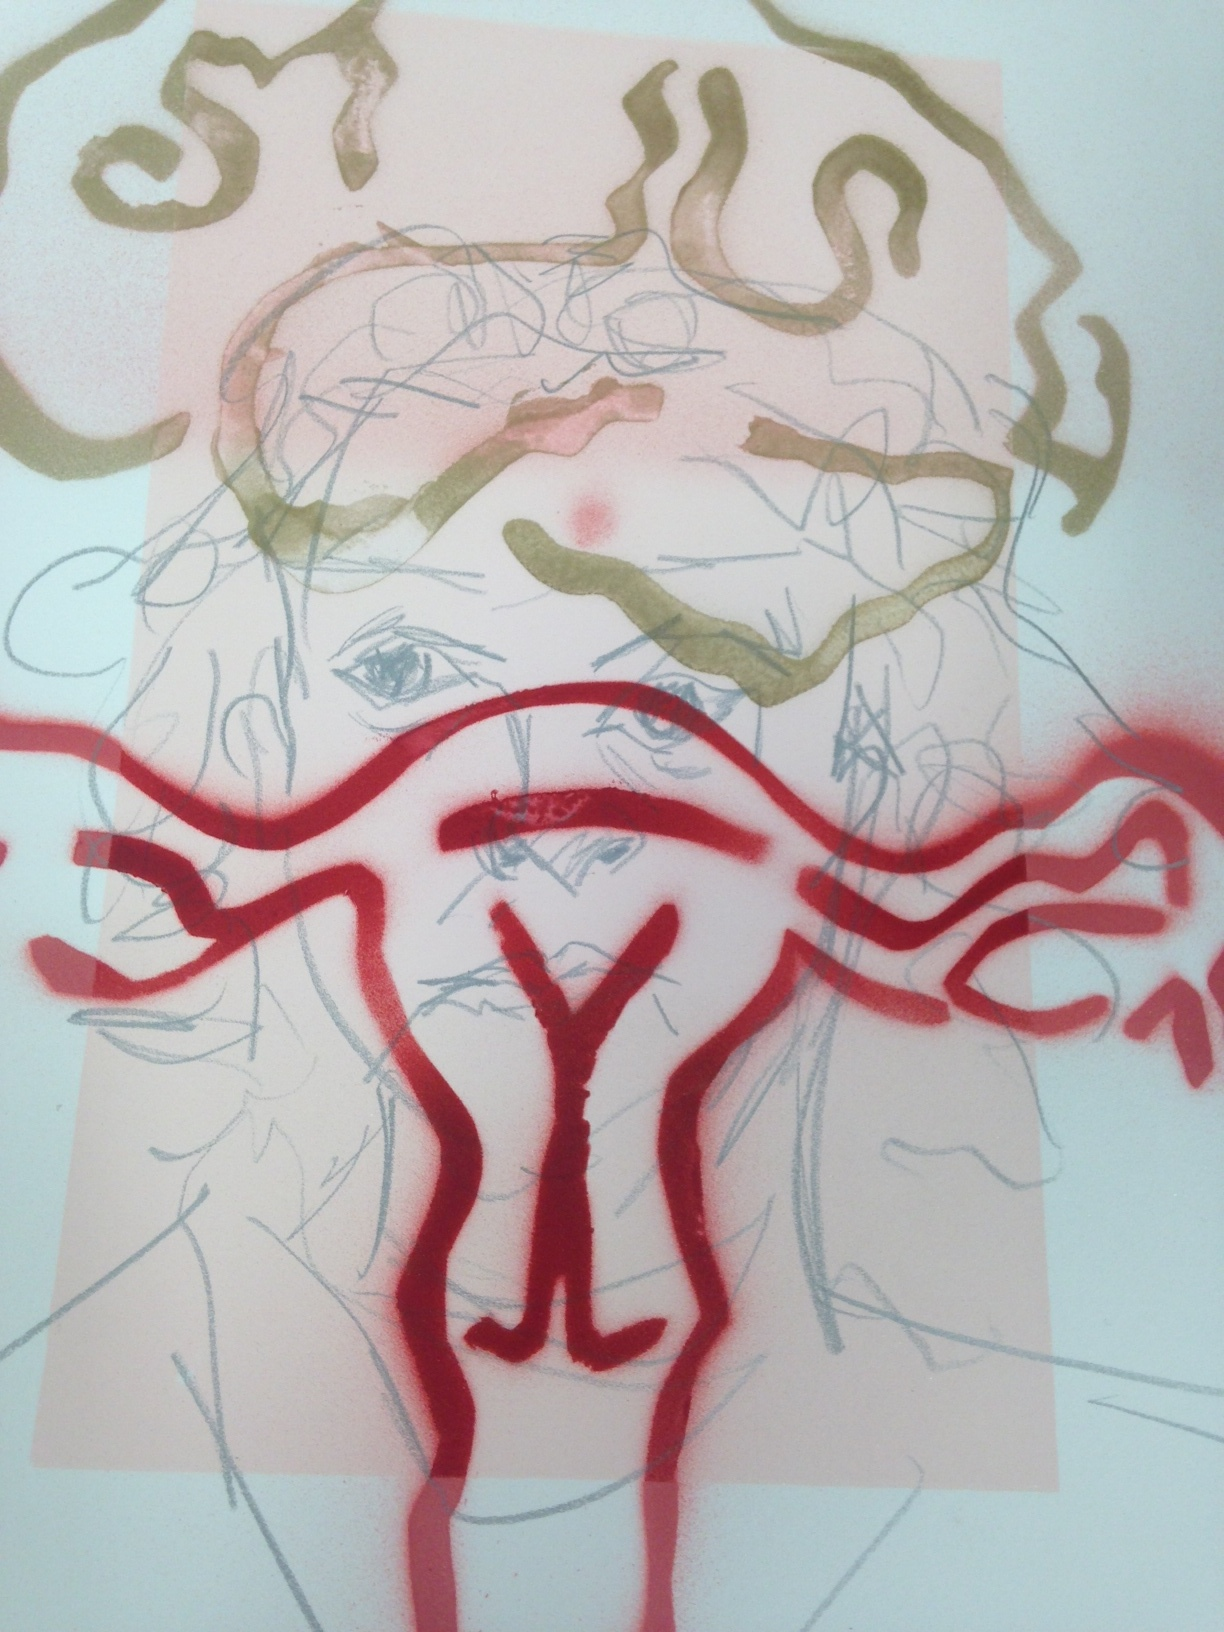 self portrait with uterus.JPG